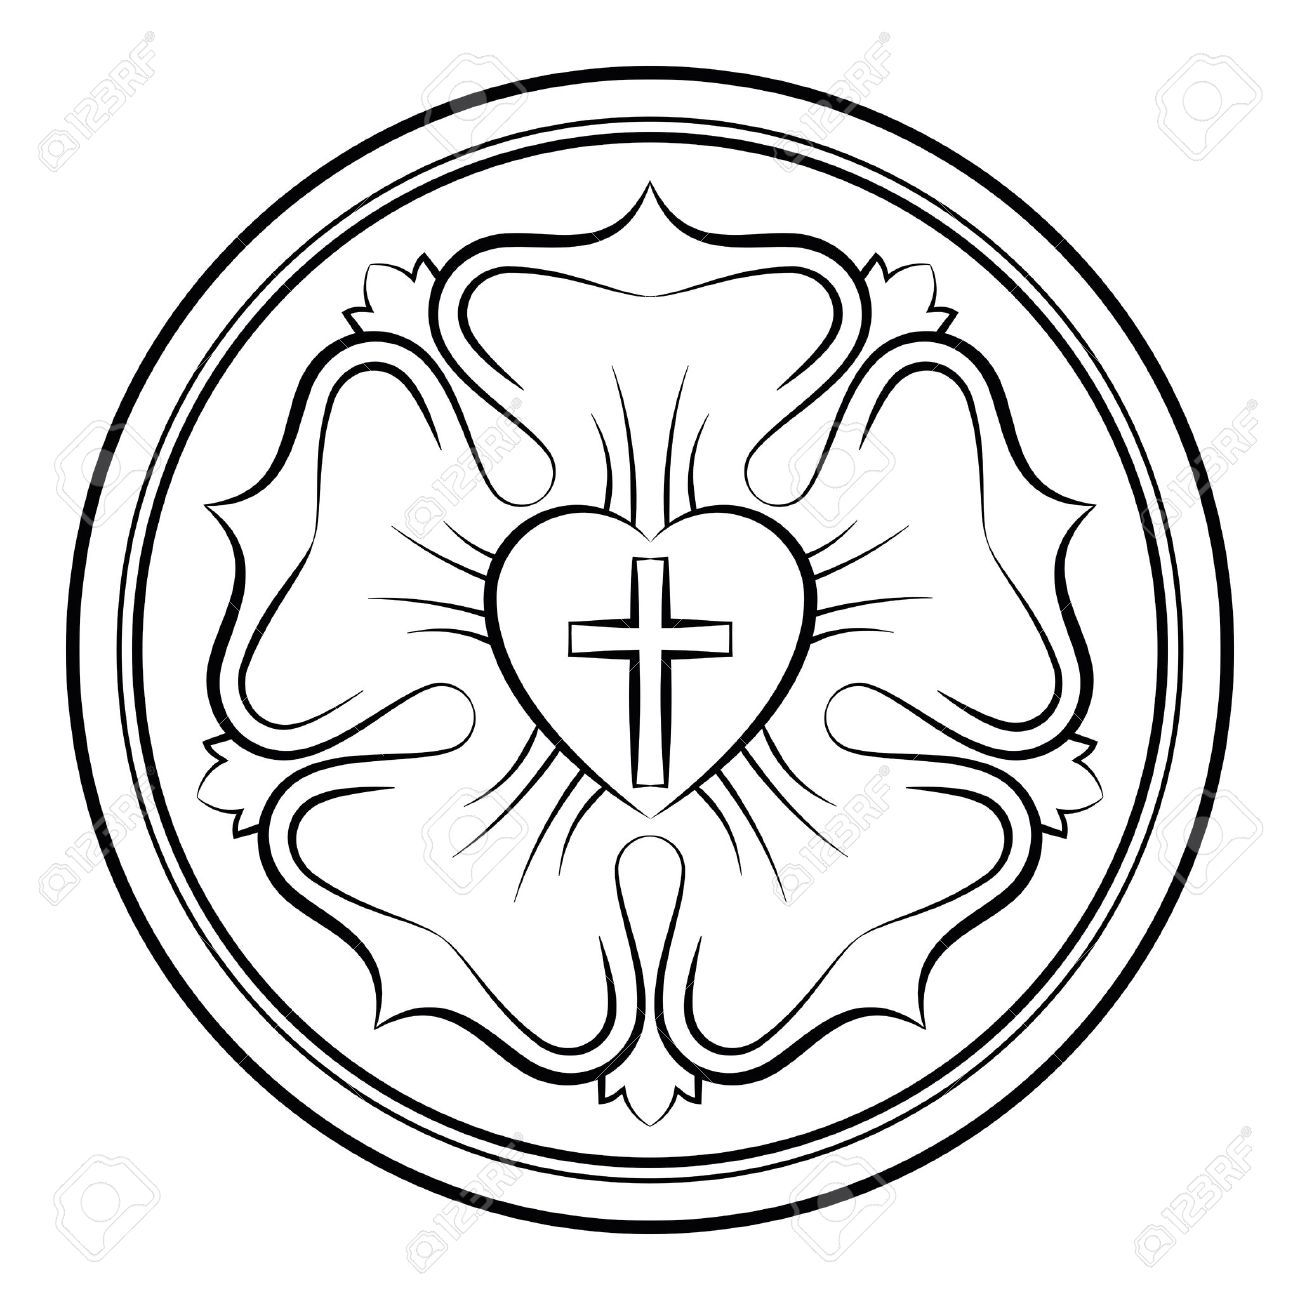 Luther Rose Monochrome Calligraphic Illustration Also Luther Seal